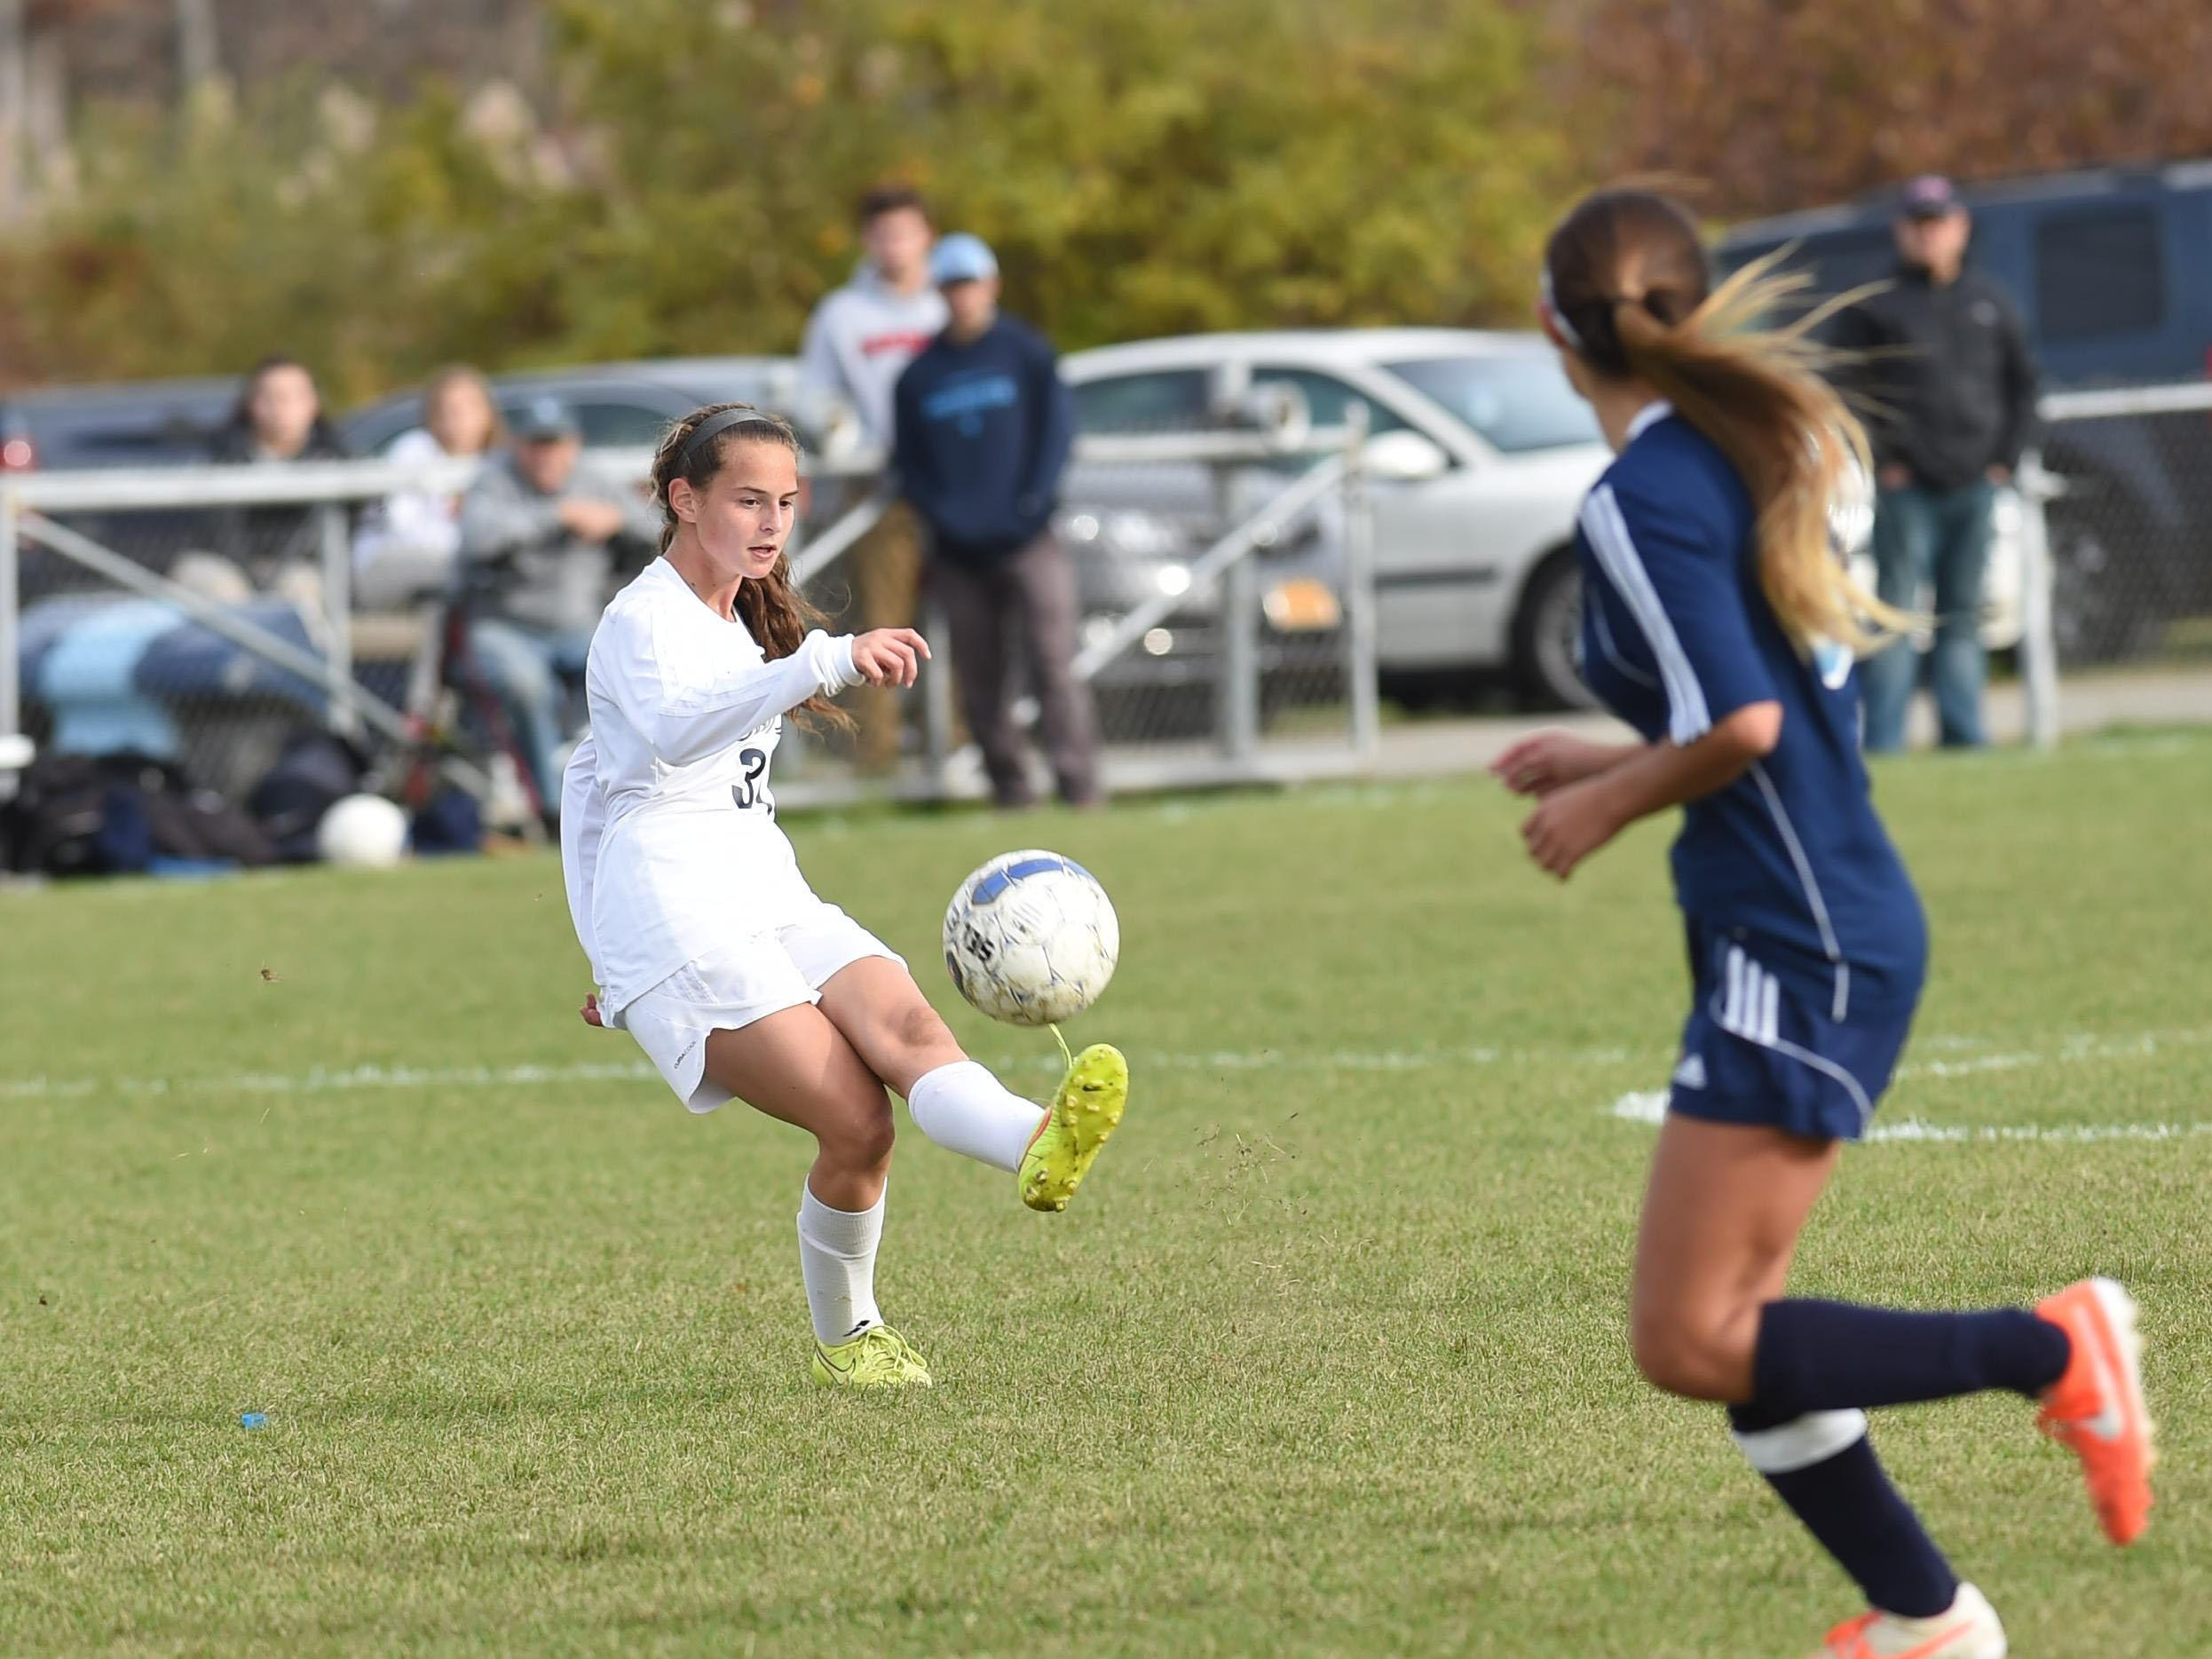 John Jay's Kiley Longin, left, kicks the ball down field during Tuesday's playoff game against Suffern.